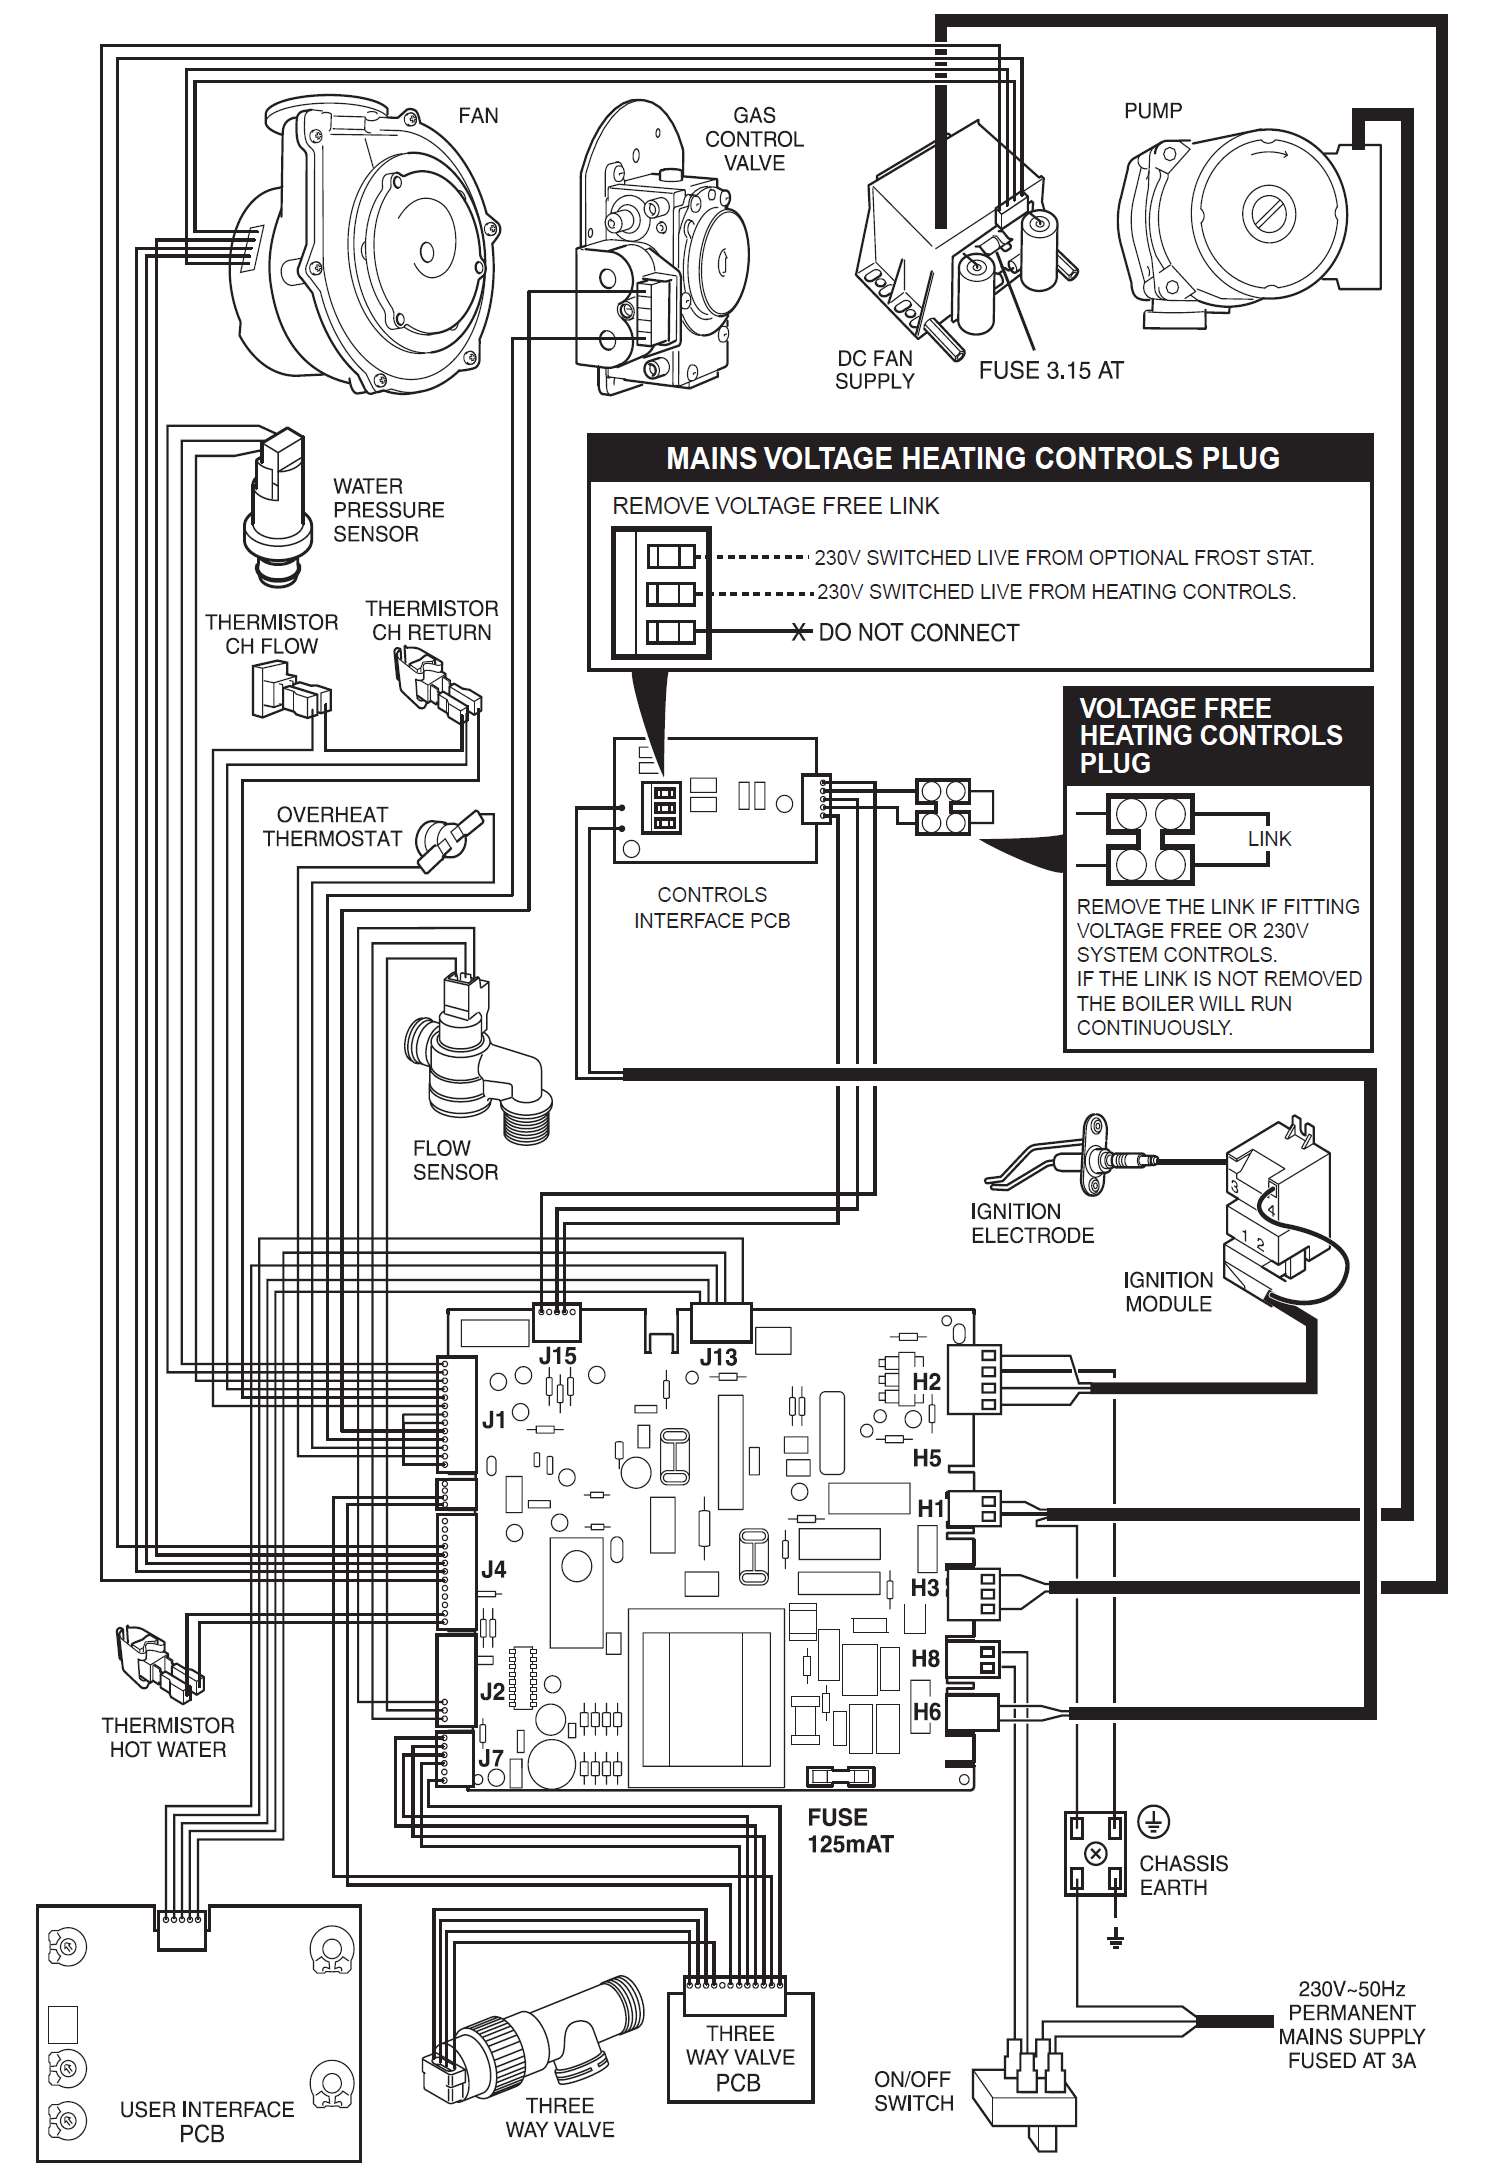 Enviroplusf24e3 ask glow worm glow worm wiring diagram at nearapp.co